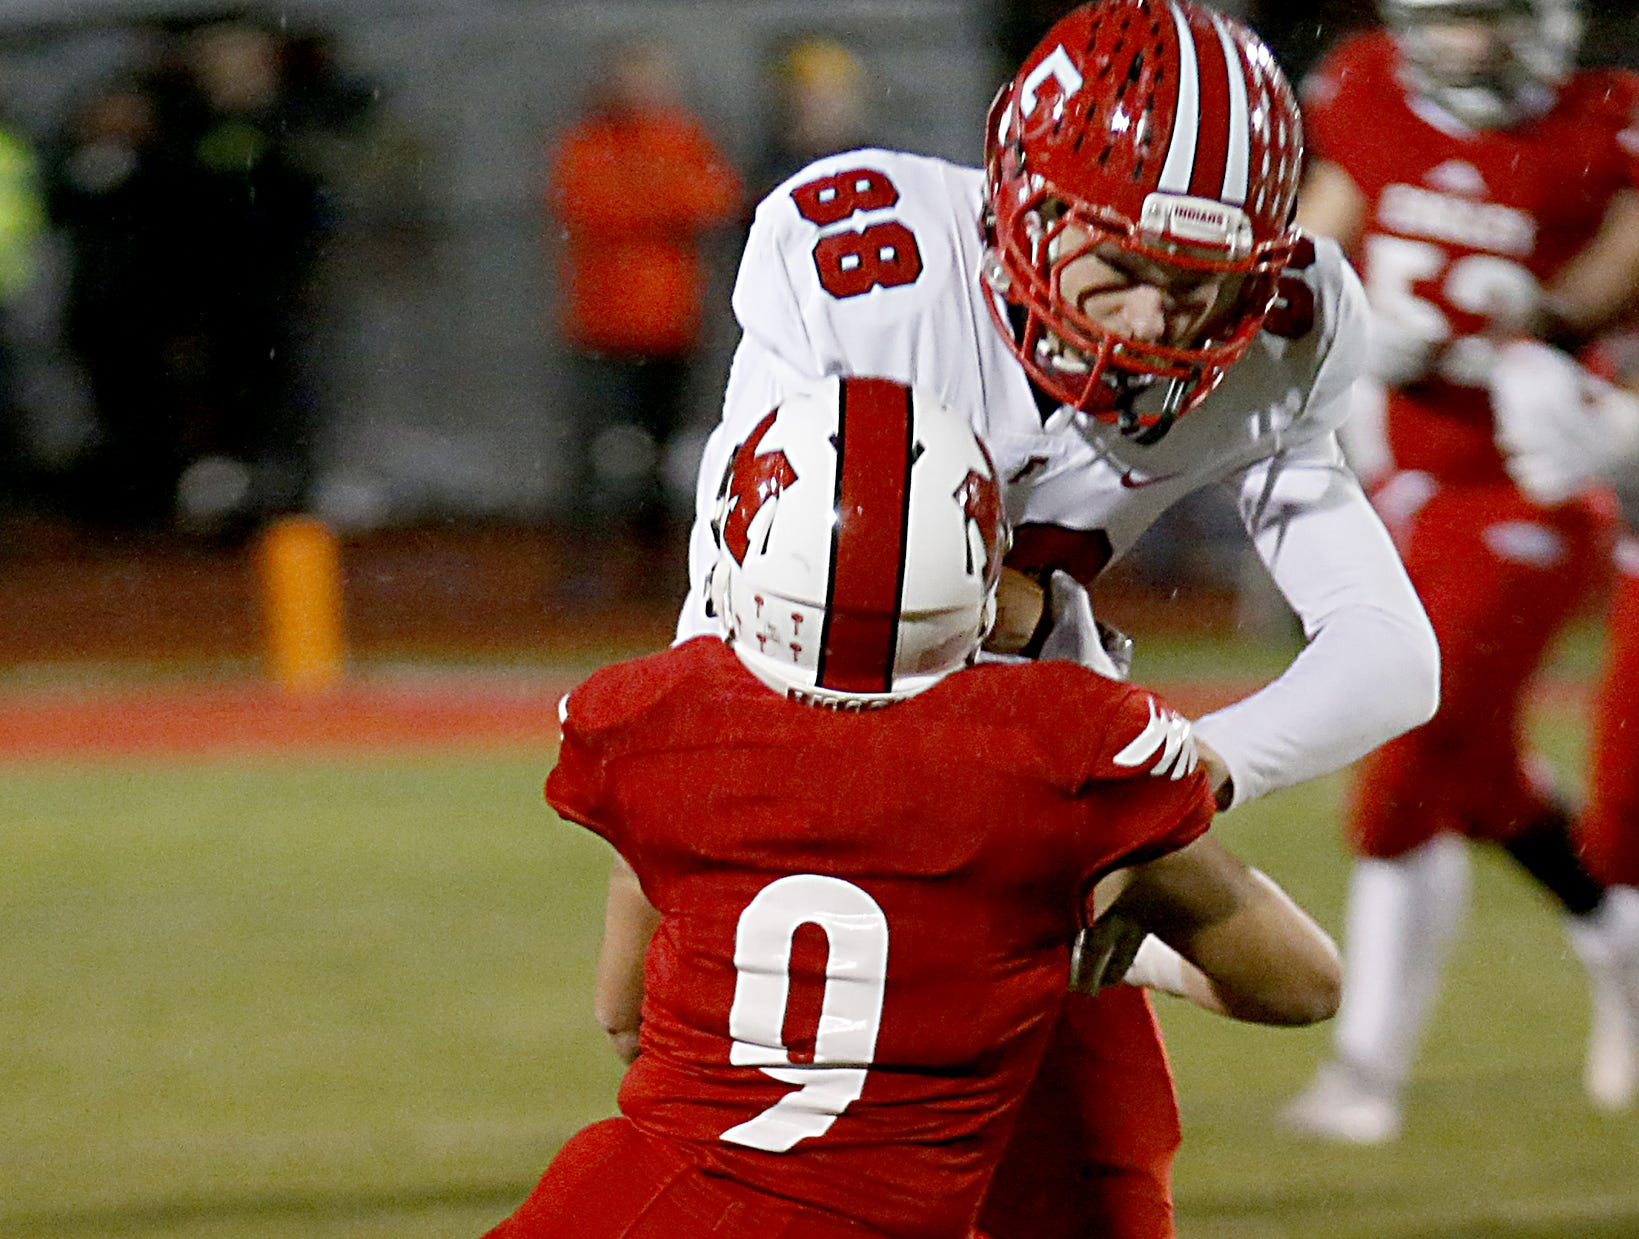 Fairfield tight end Caleb Sexton is stopped by Milford defensive back Owen Martin during their Division I playoff game at Eagle Stadium in Milford Friday, Nov. 2, 2018.